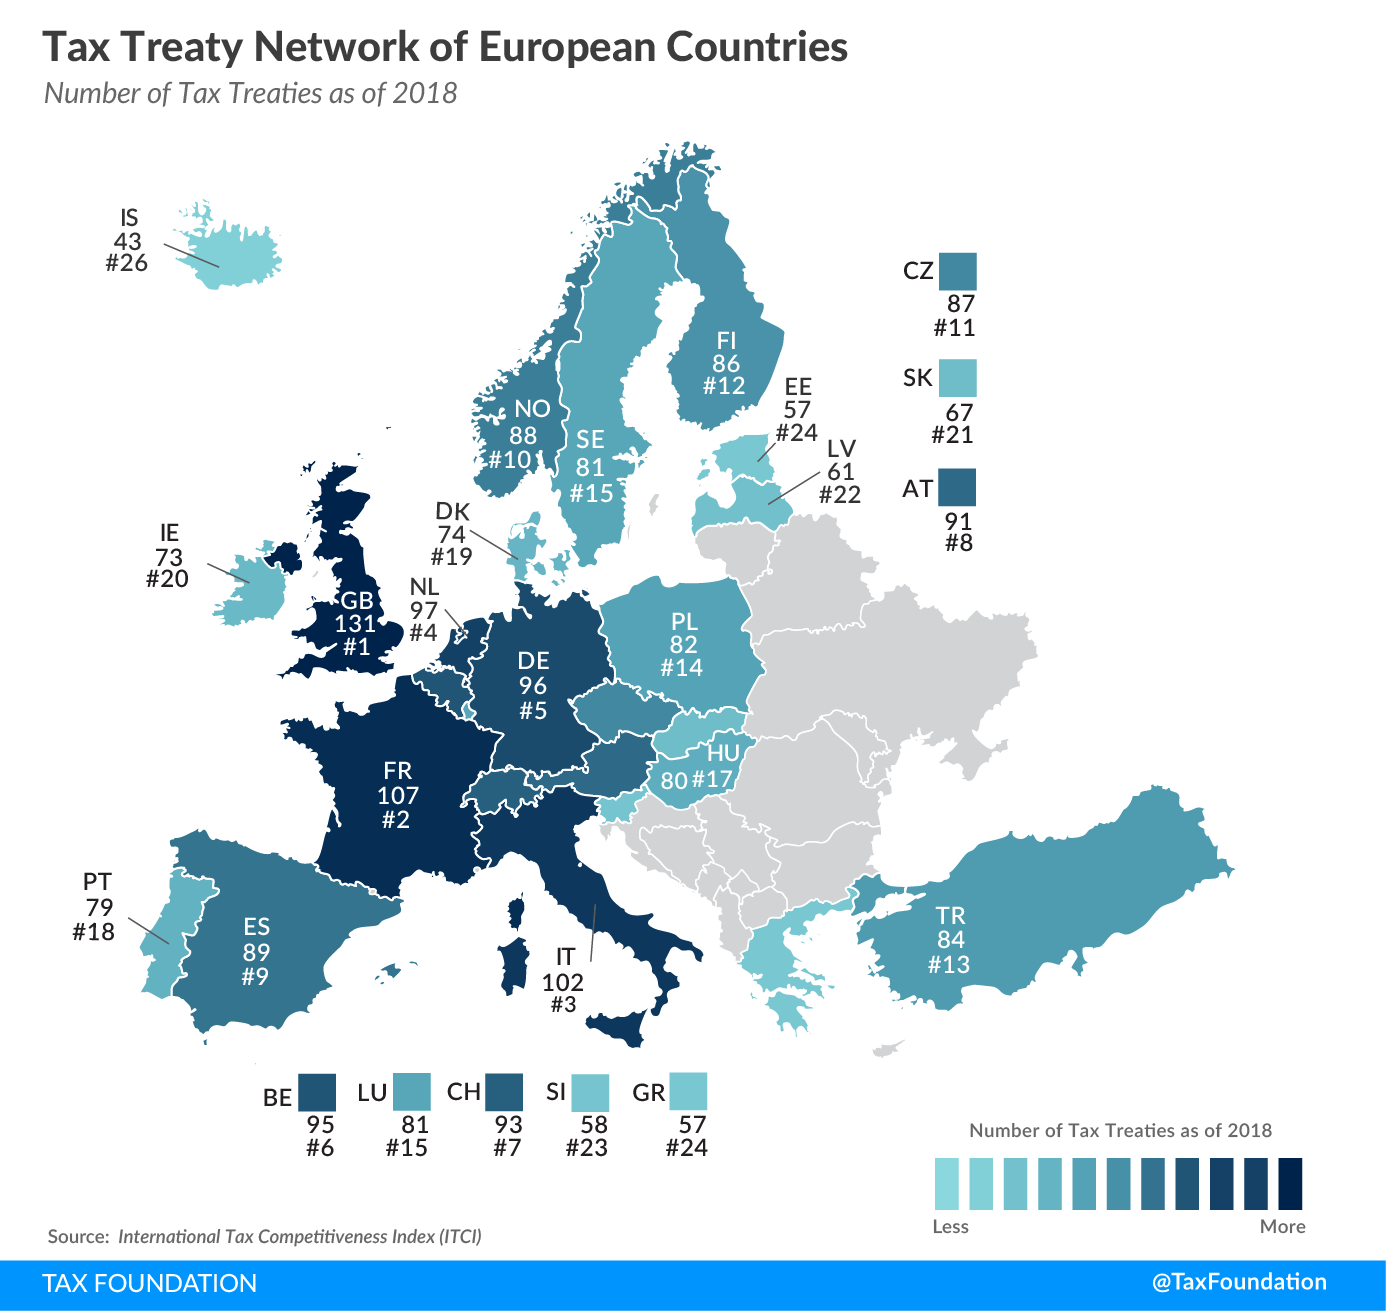 European tax treaty 2019 tax treaty network of european countries 2019